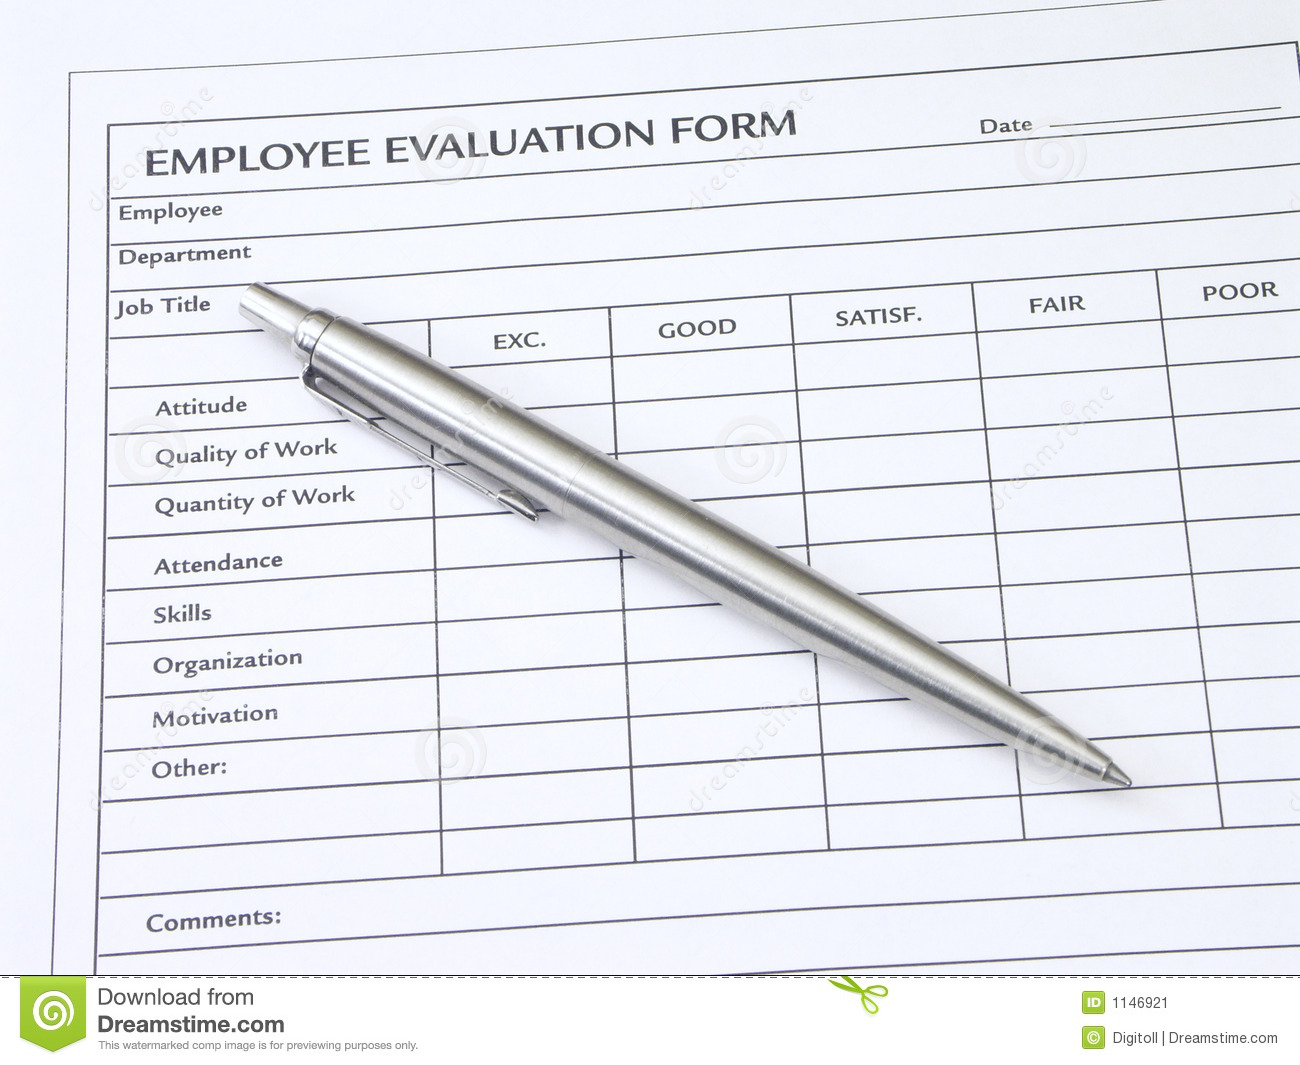 Employee Evaluation Form stock image. Image of commerce